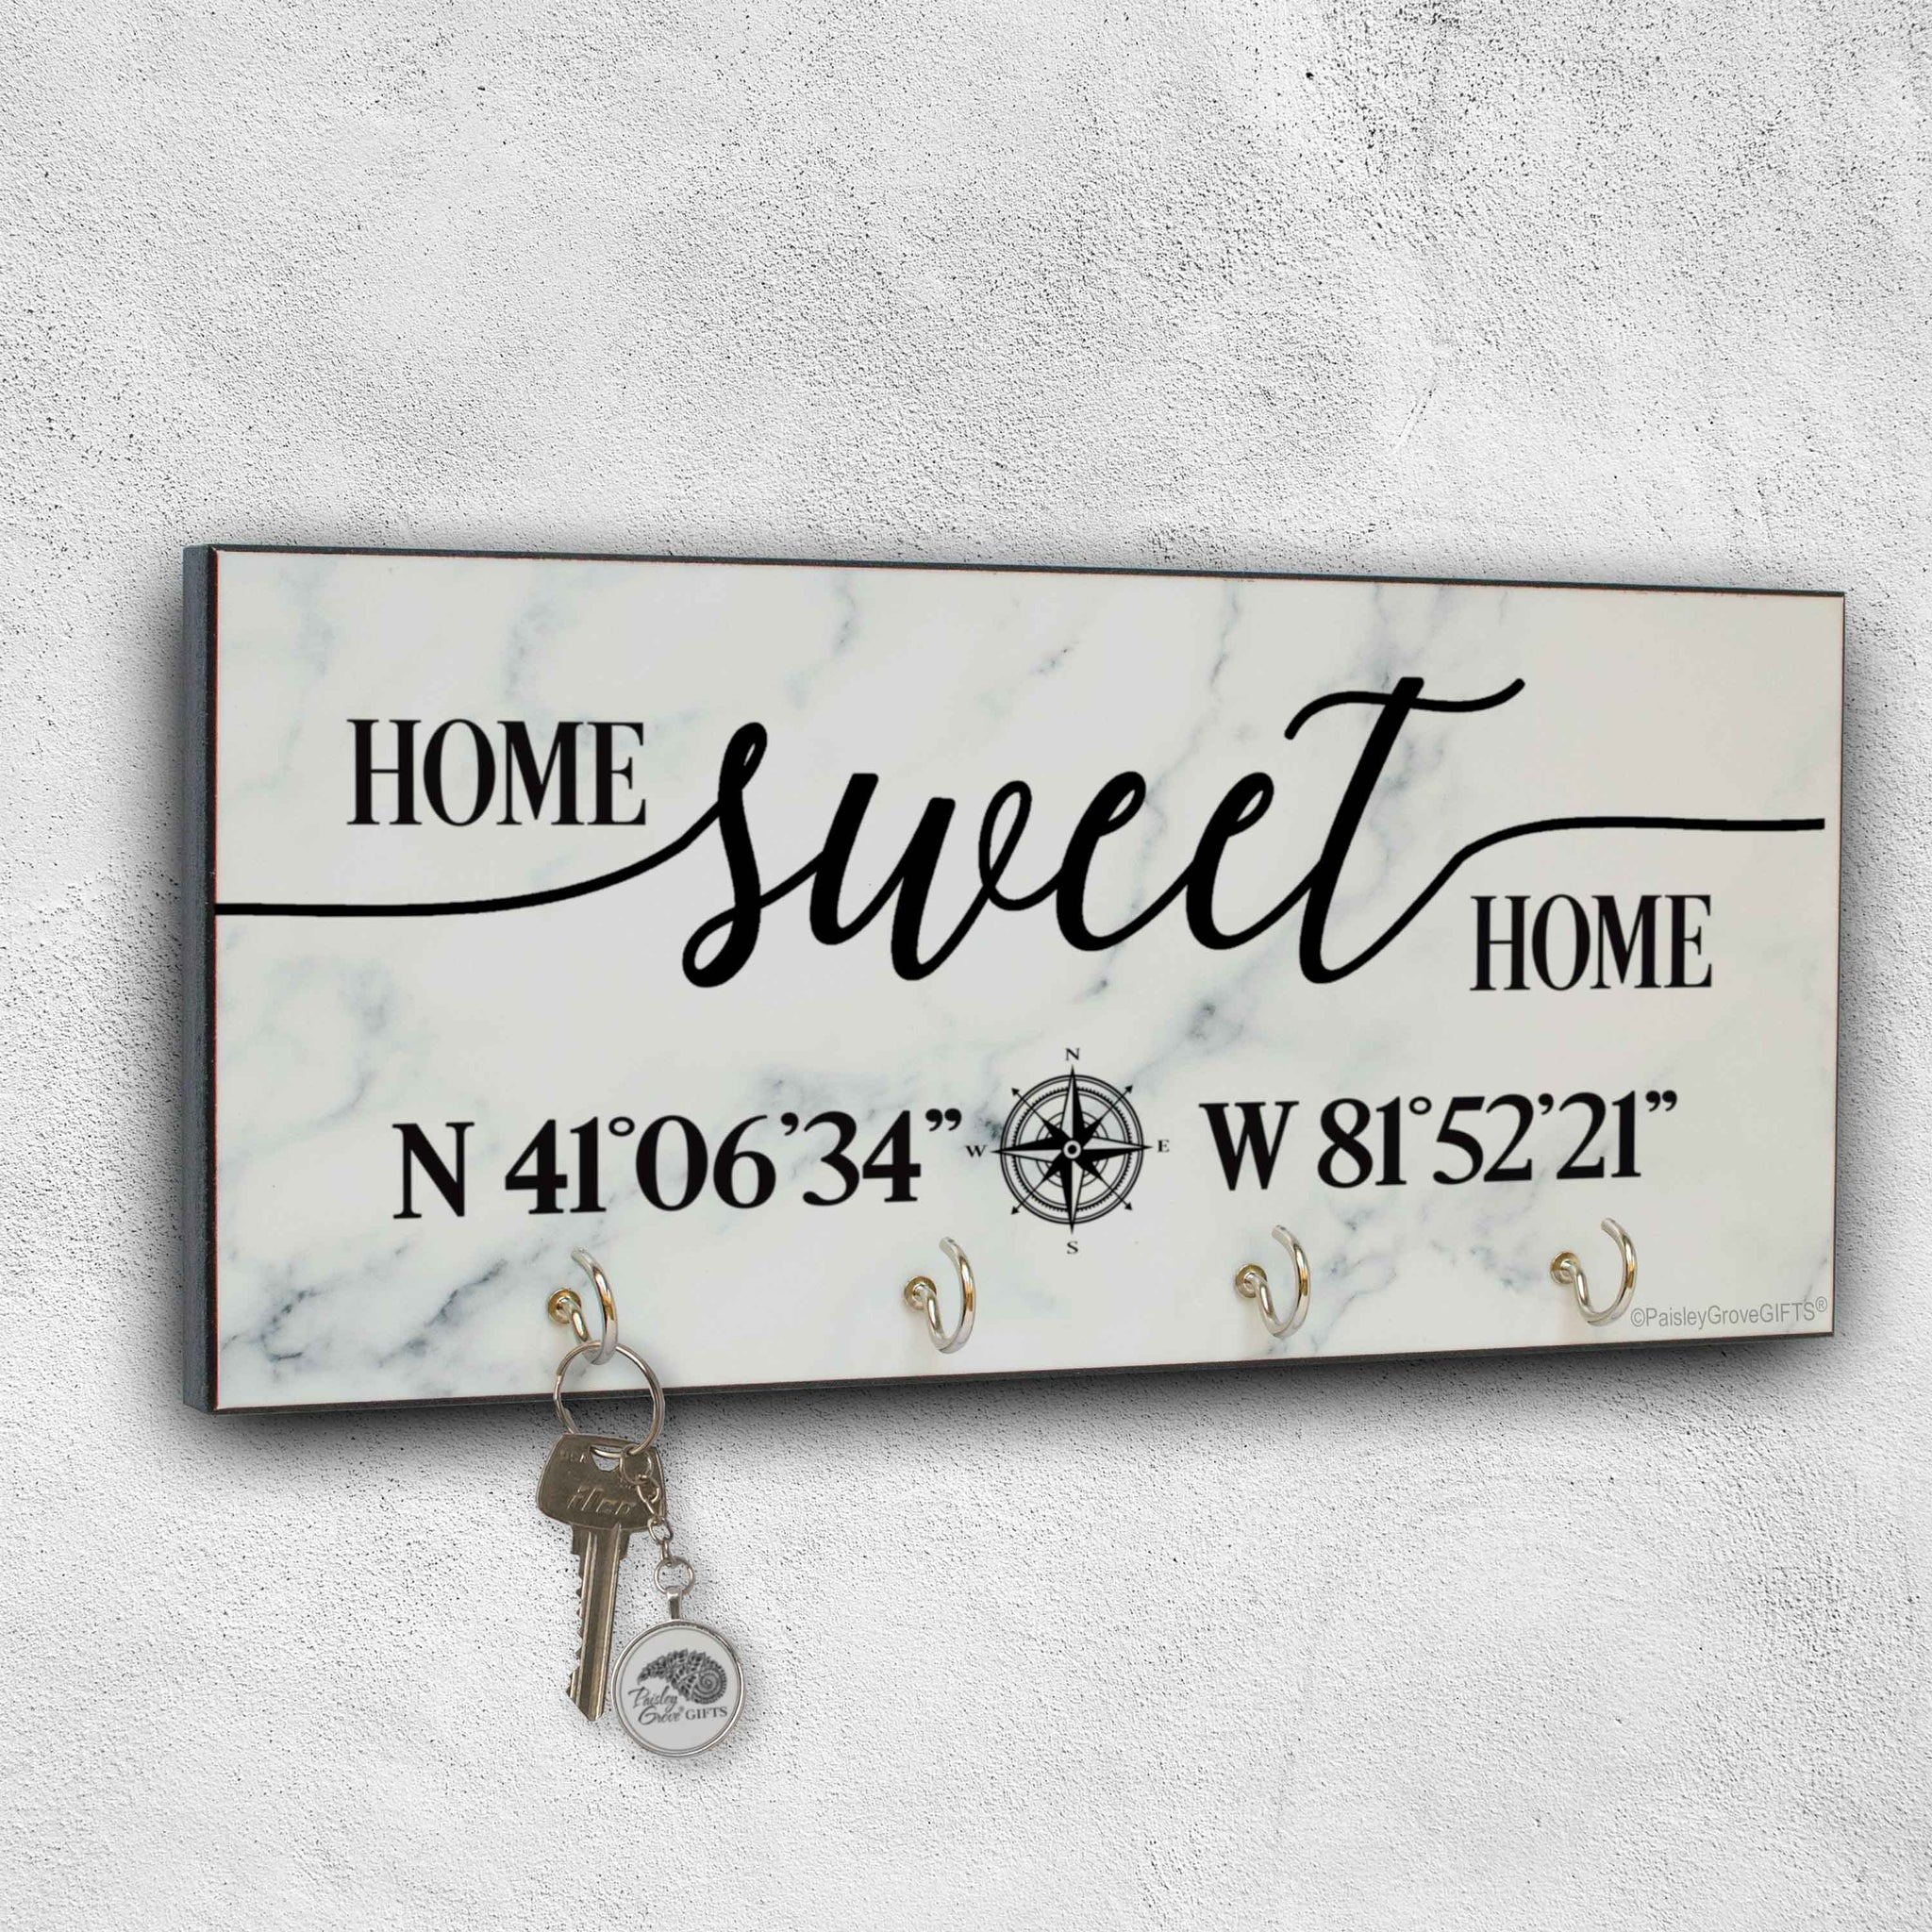 CopyrightPaisleyGroveGIFTS S303c Home Sweet Home with coordinates sign Modern Decor entryway key hanger on stucco